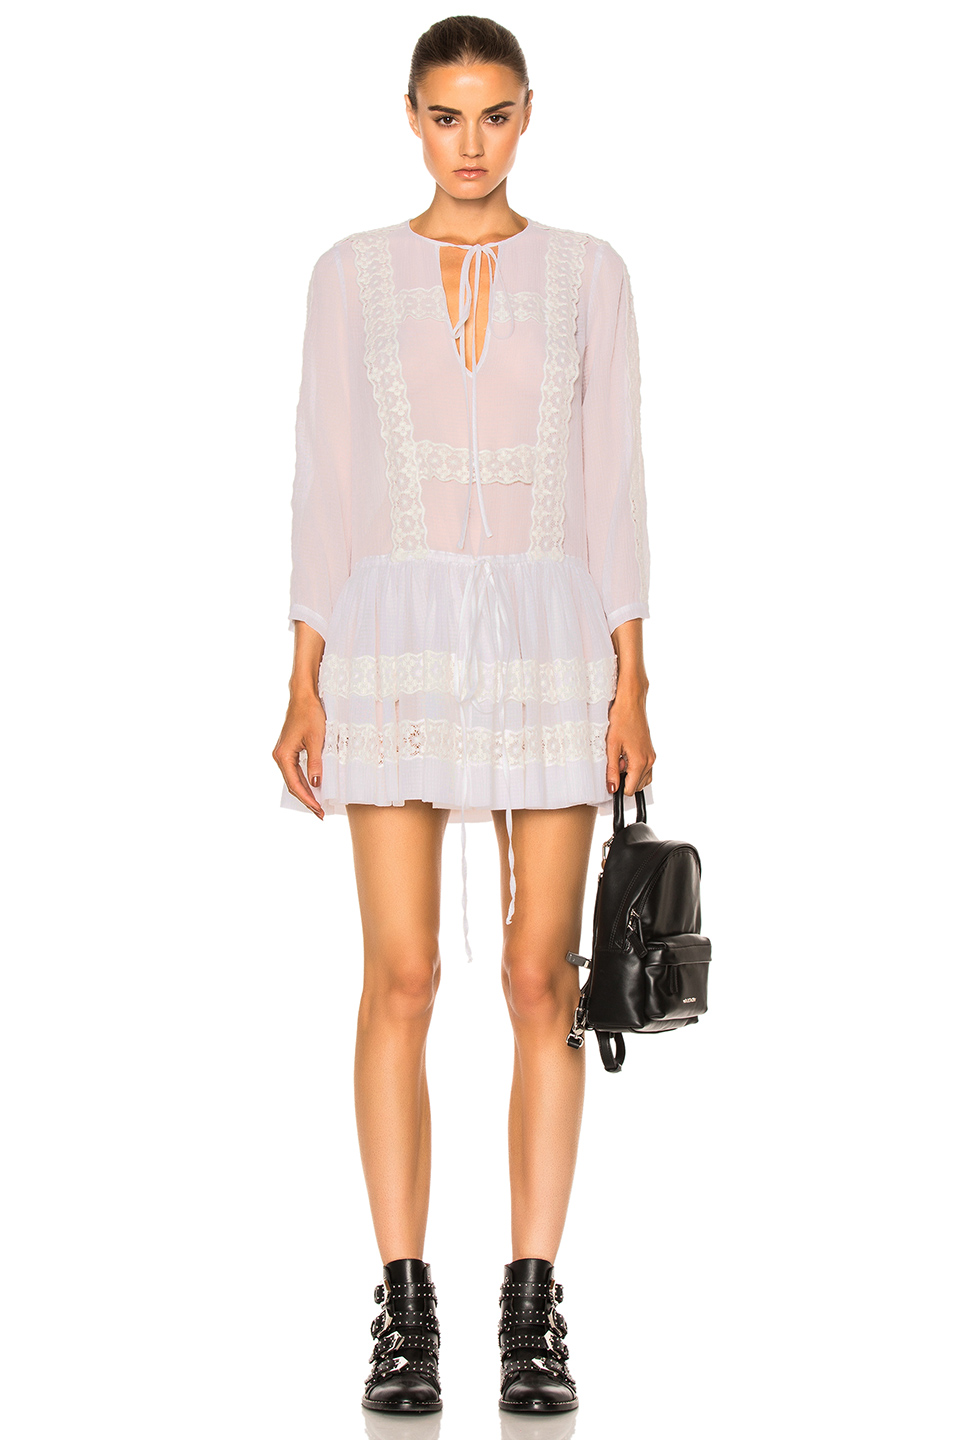 Givenchy Lace Detail Dress in White